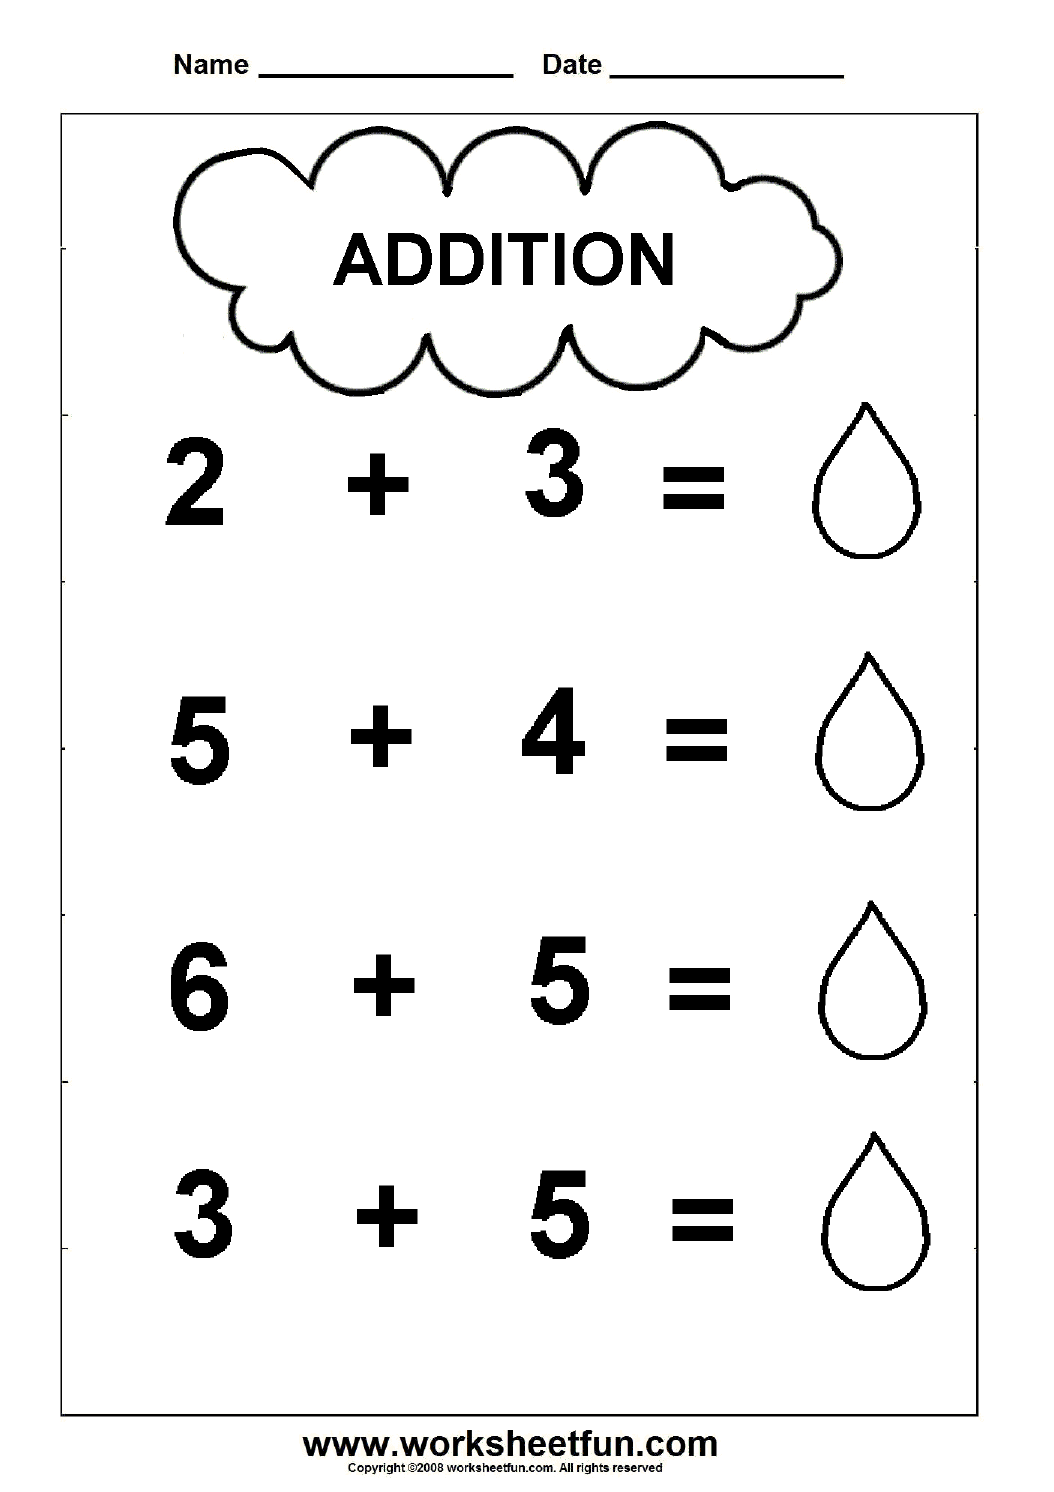 math worksheet : 1000 images about free printable worksheets on pinterest  : Math Addition Worksheets Kindergarten